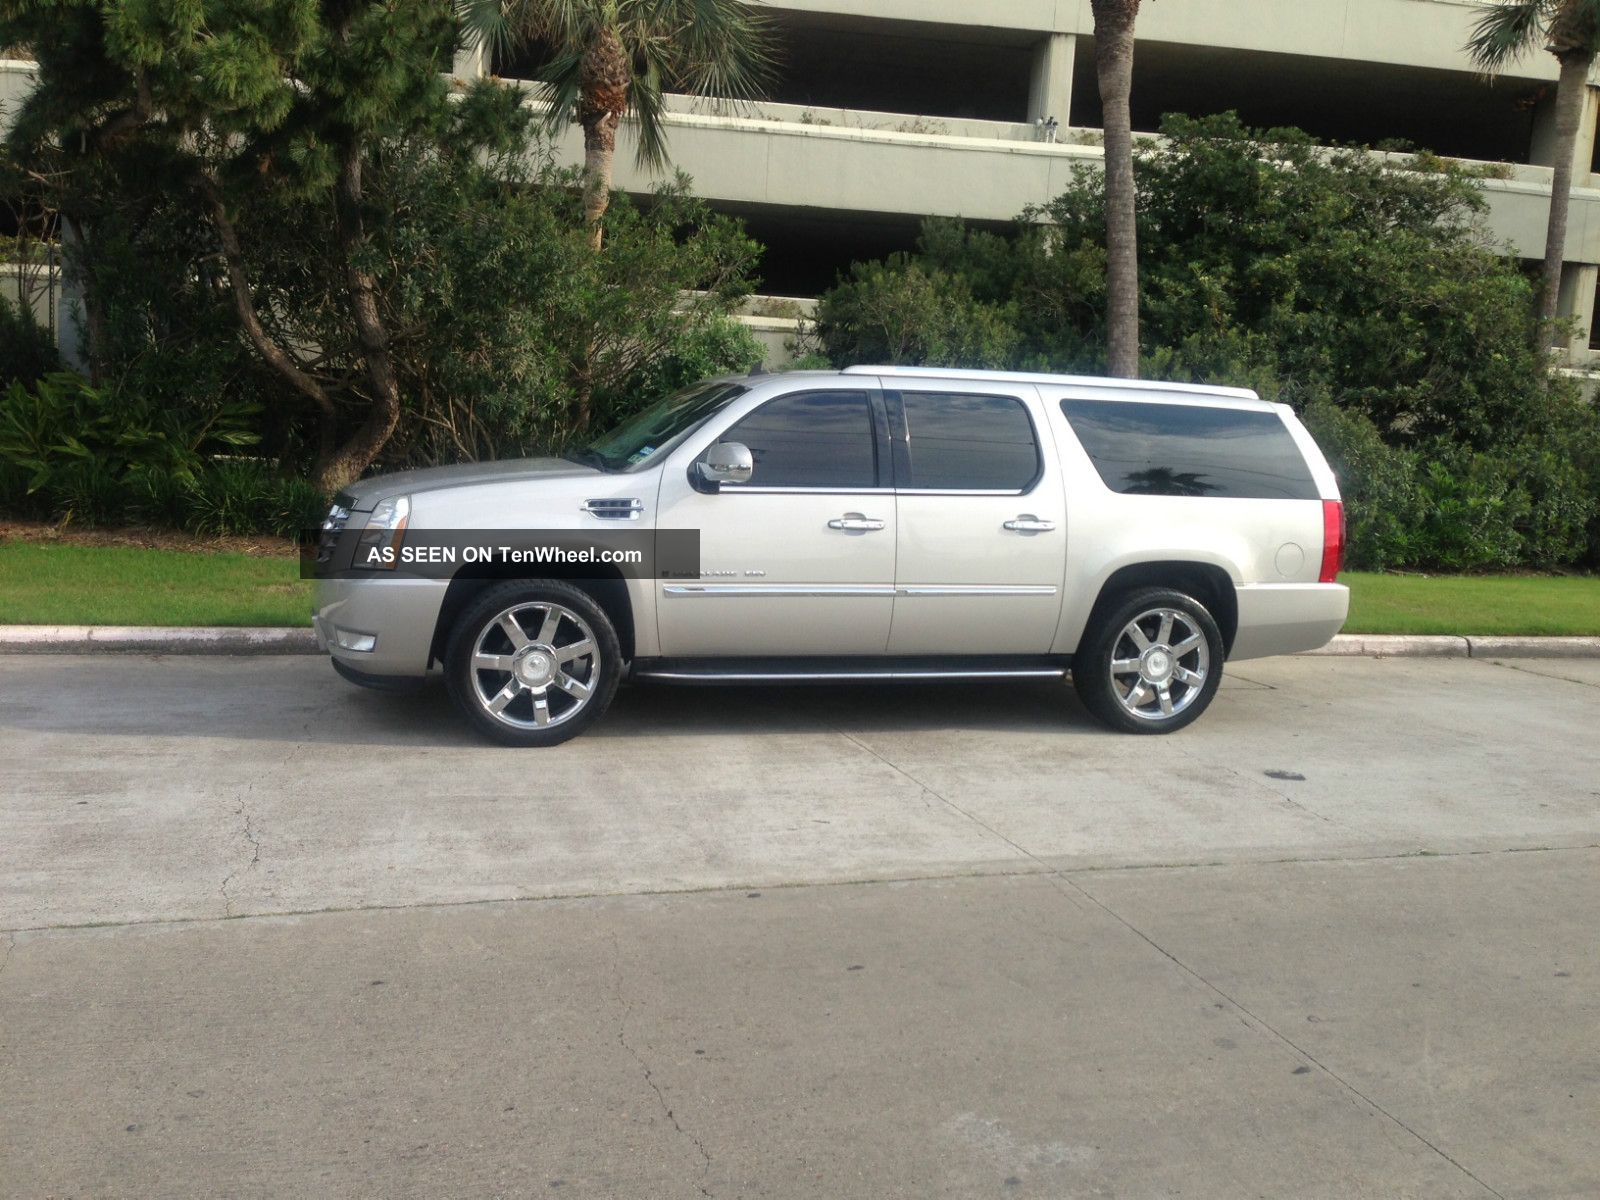 2007 Cadillac Escalade Esv Awd 6.  2 V8 Premium Pkg.  22in Chrome Wheels Escalade photo